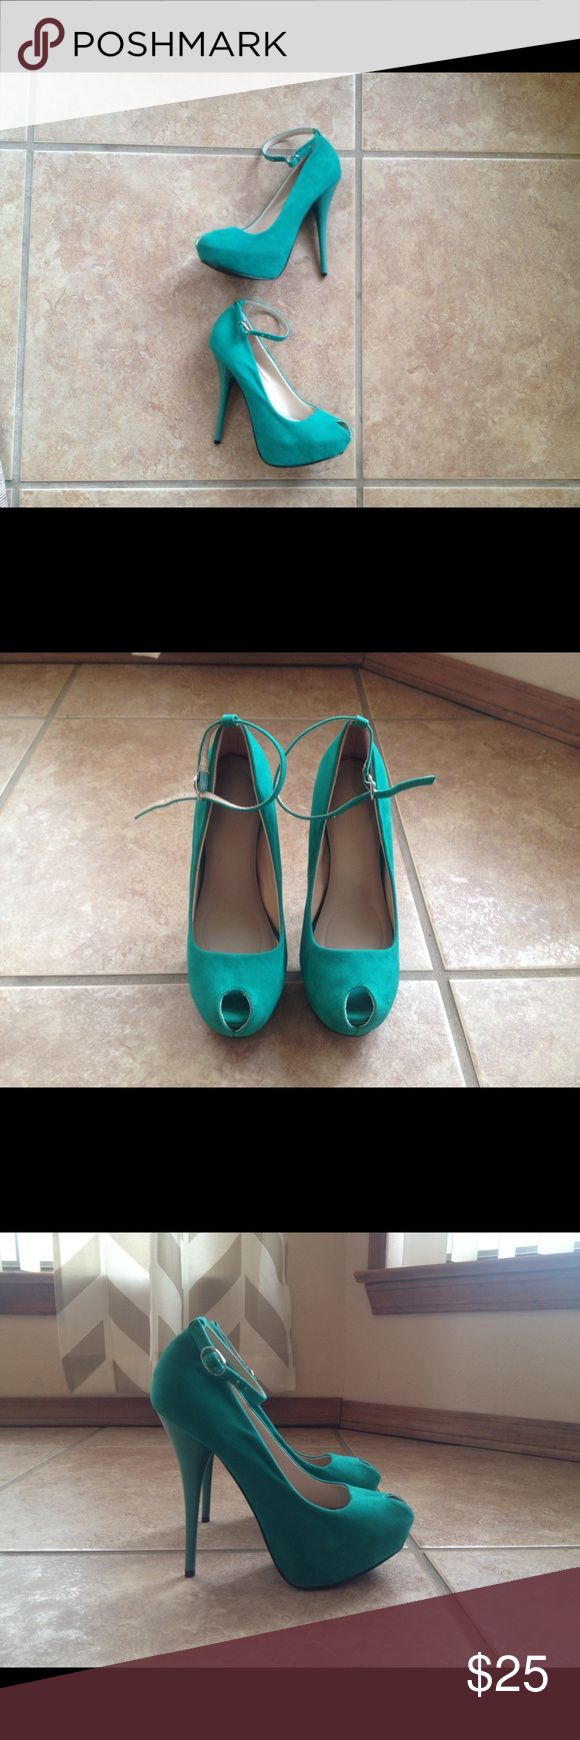 JustFab Arya - Peep toe pump - Size 7 Super cute peep toe pump in a deep mint color. These have a low platform for added height and an ankle strap for security. Perfect color for spring! Only worn once. JustFab Shoes Heels